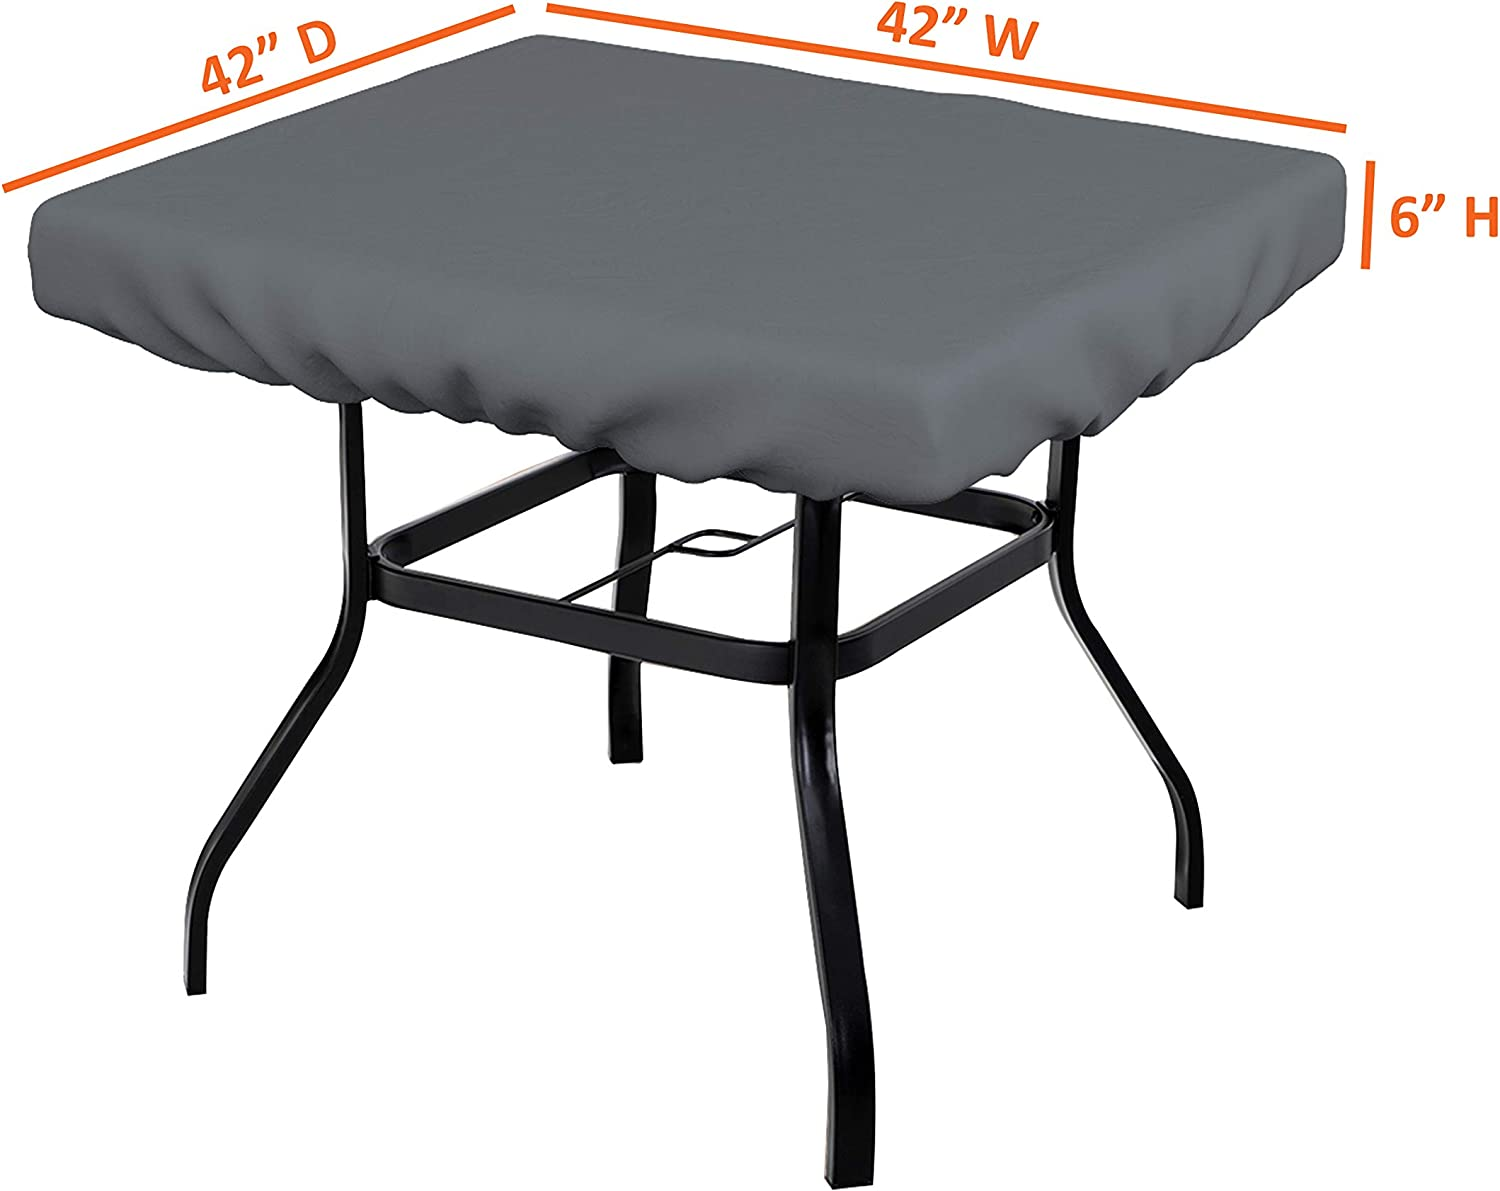 x 24 100/% Weather Resistant Outdoor Table Cover with Elastic for Snug Fit D Square Table Top Covers 12 OZ , Beige W x 24 H 6